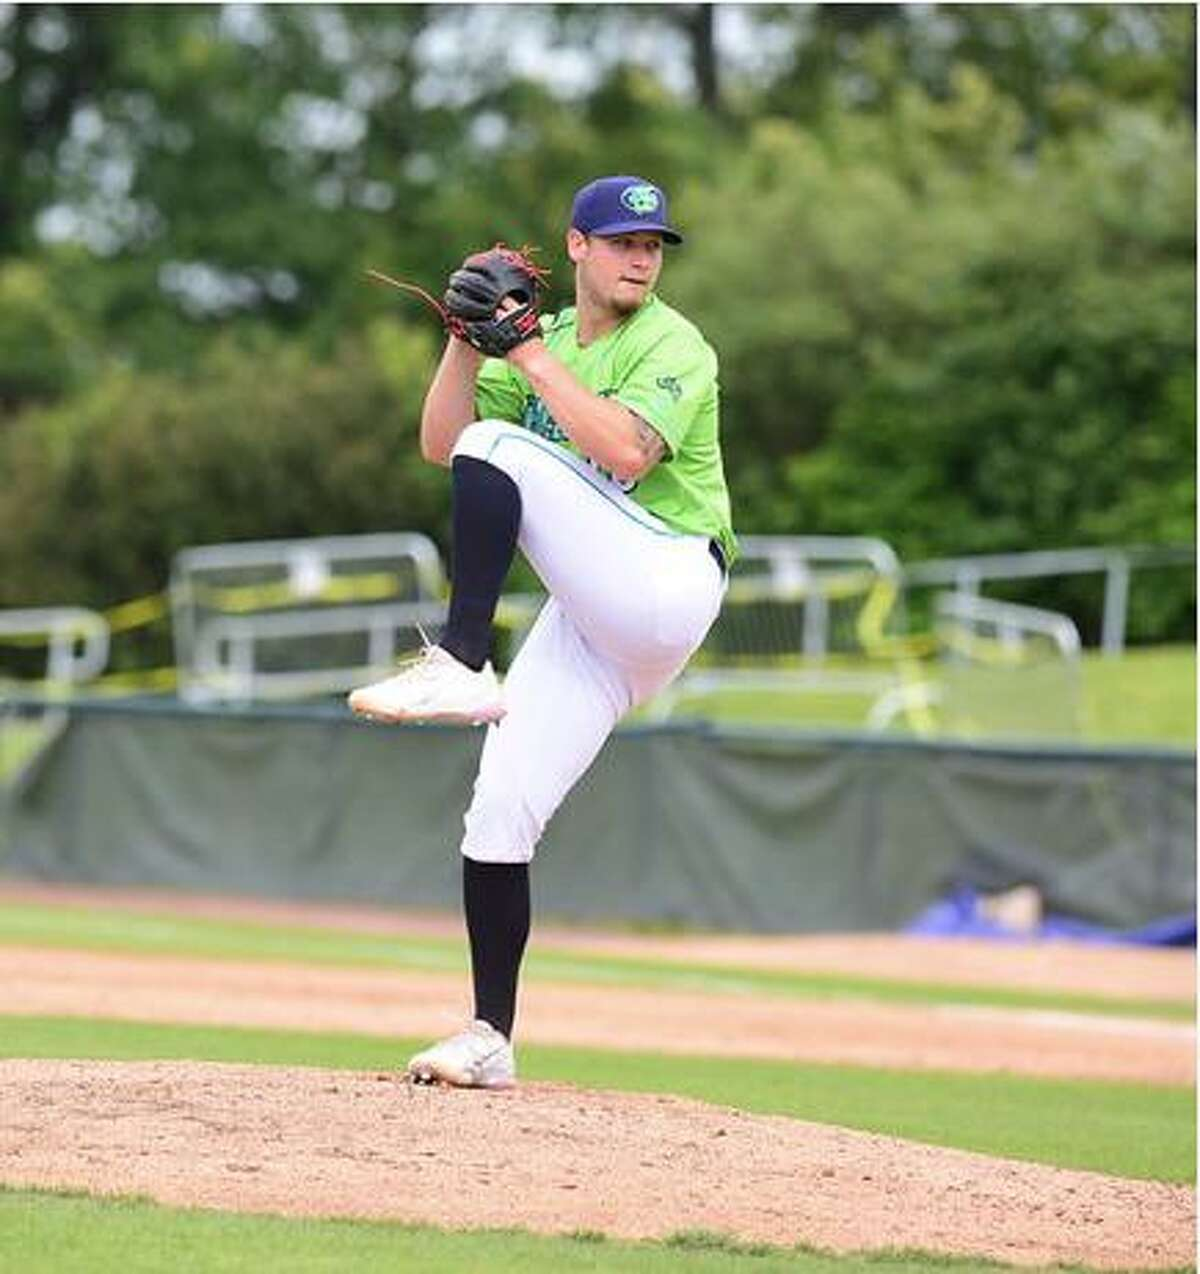 Wallingford's Zach Hart began his first season at Single-A Lynchburg with 12 1/3 scoreless innings out of the bullpen.